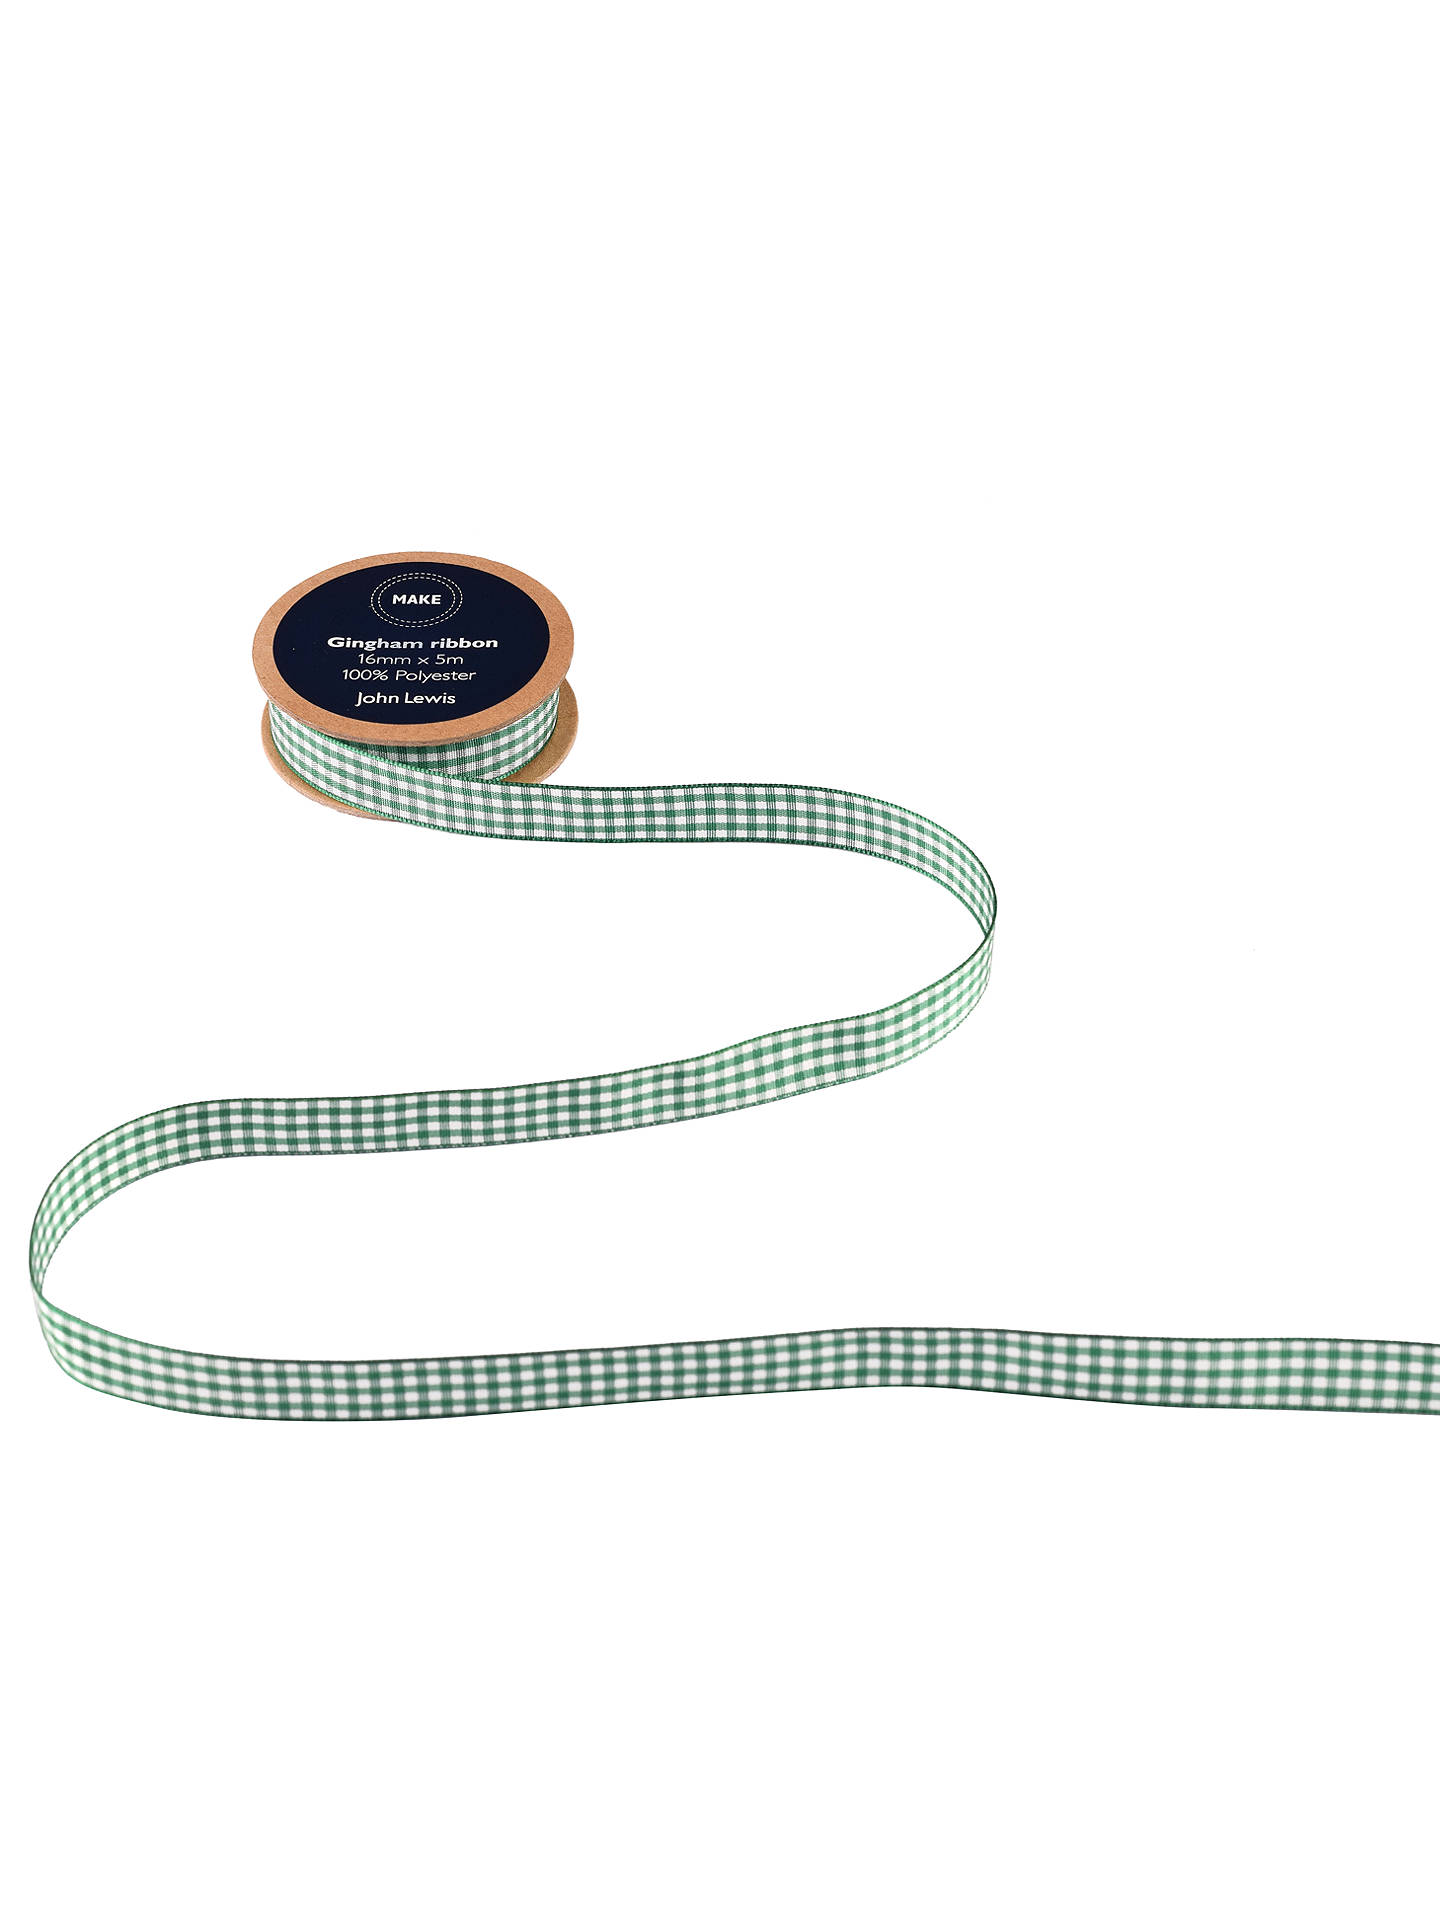 BuyJohn Lewis & Partners Gingham Ribbon, 5m x 16mm Online at johnlewis.com